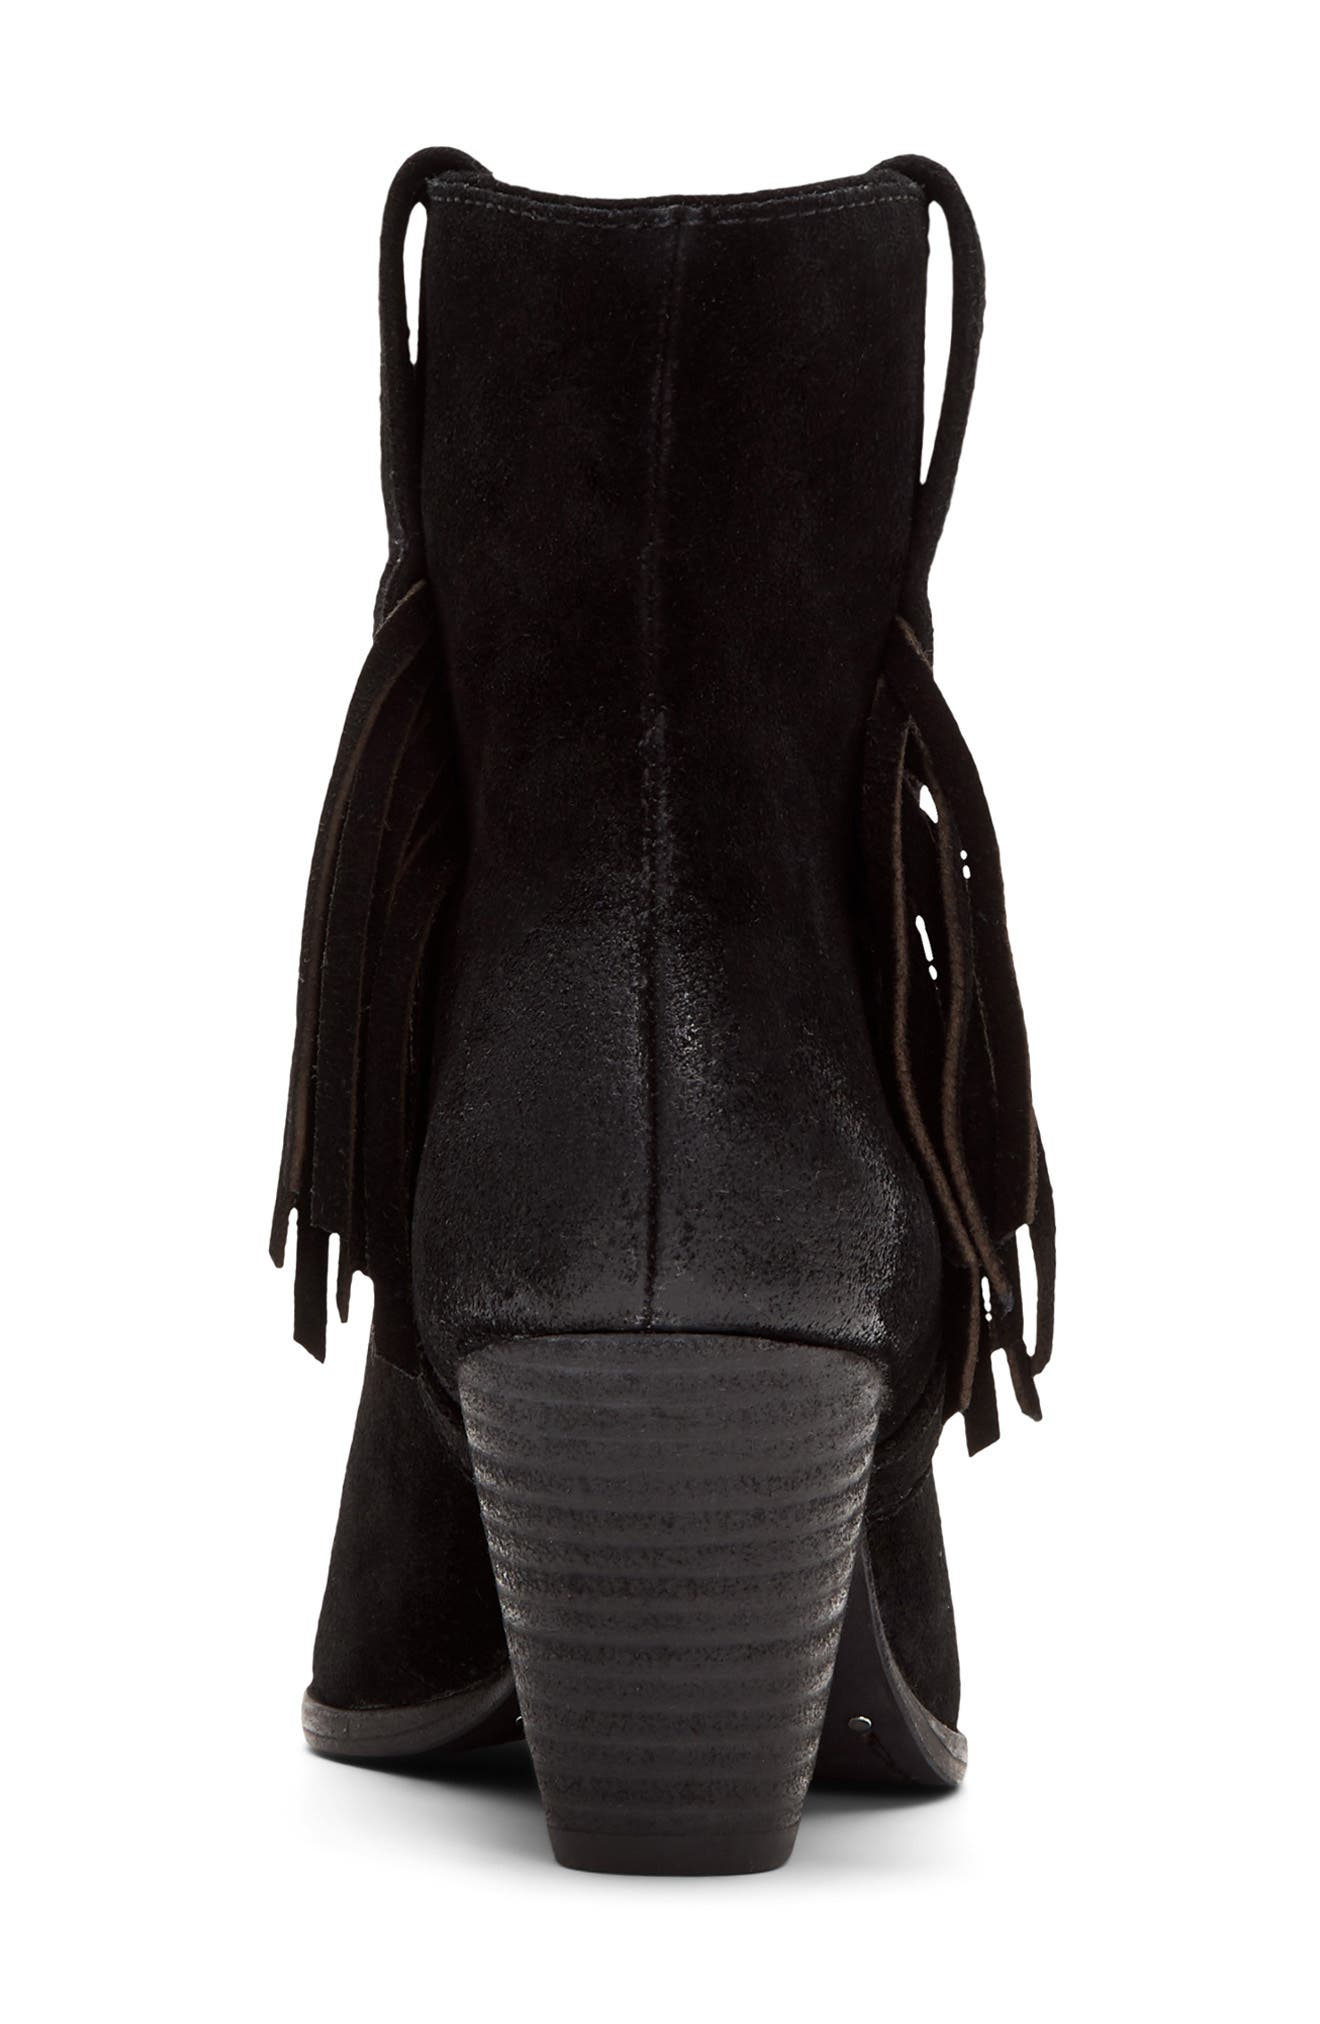 Frye Boots Reed Showdown Stud Bootie